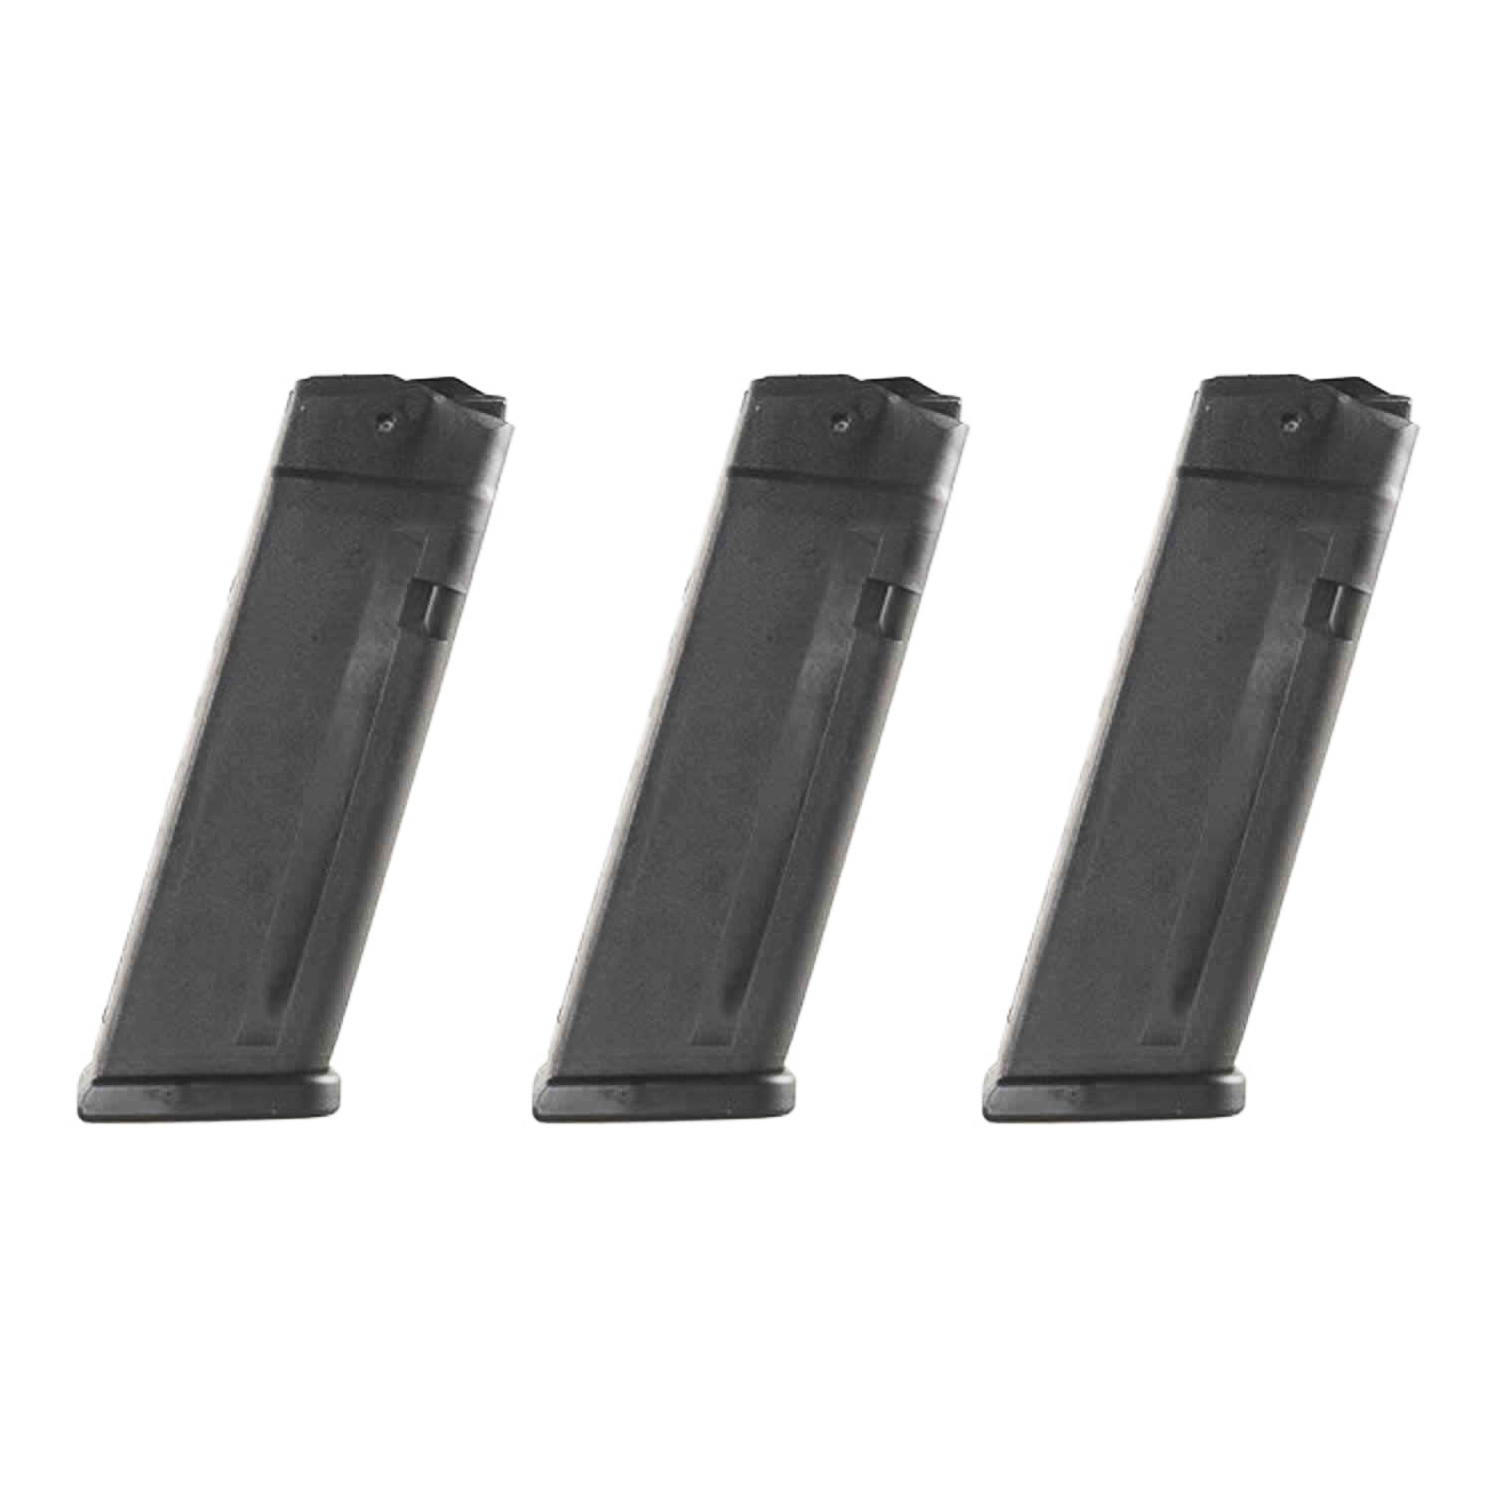 10MM 10 RD Round Pistol Factory Magazine 3PACK Glock Perfection 10020